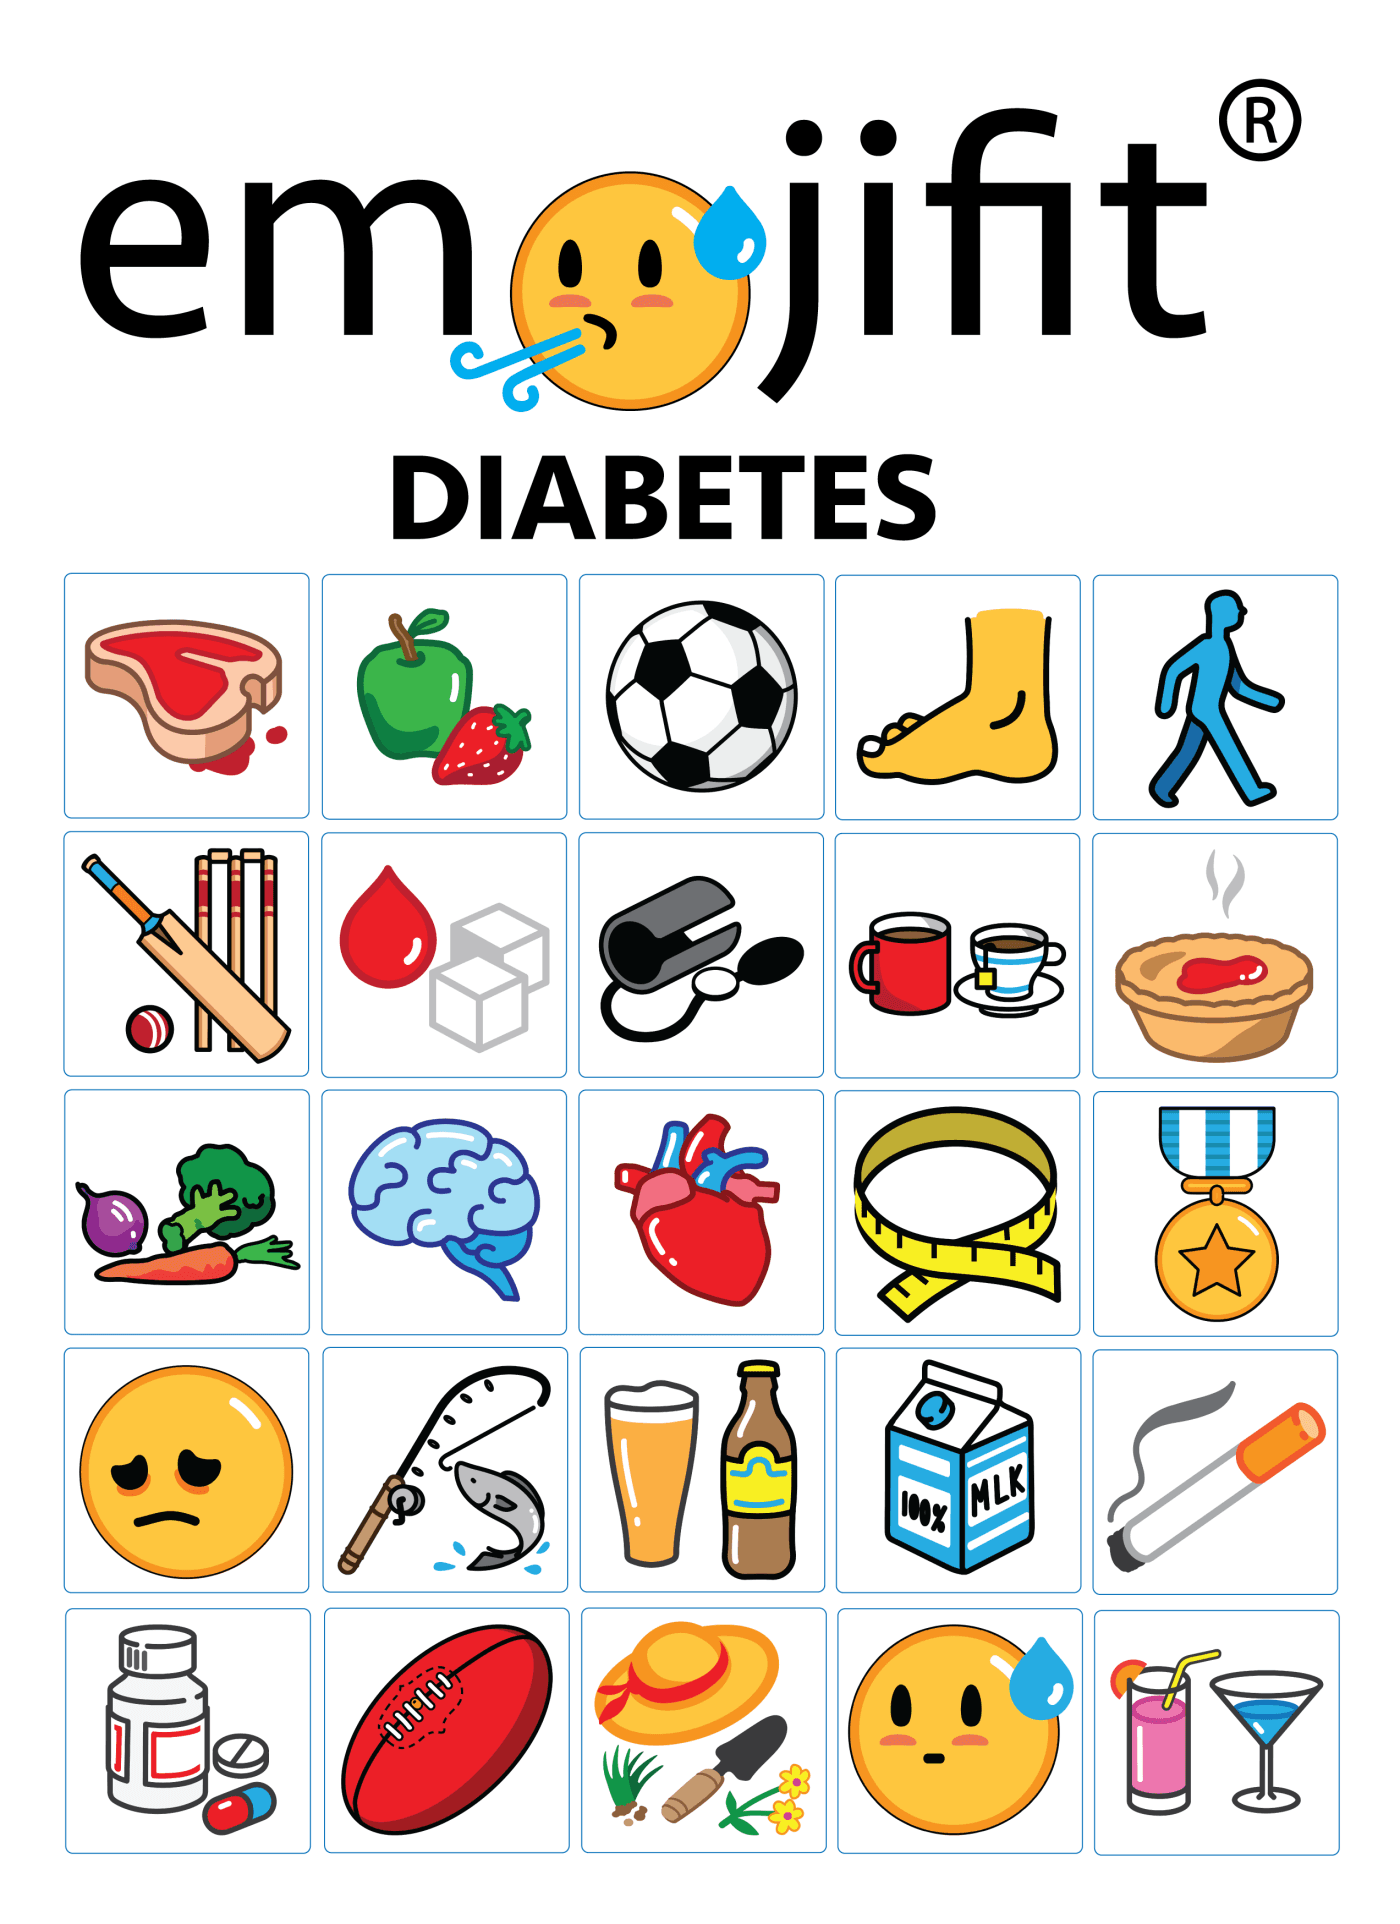 emojifit pictorial library for health examples